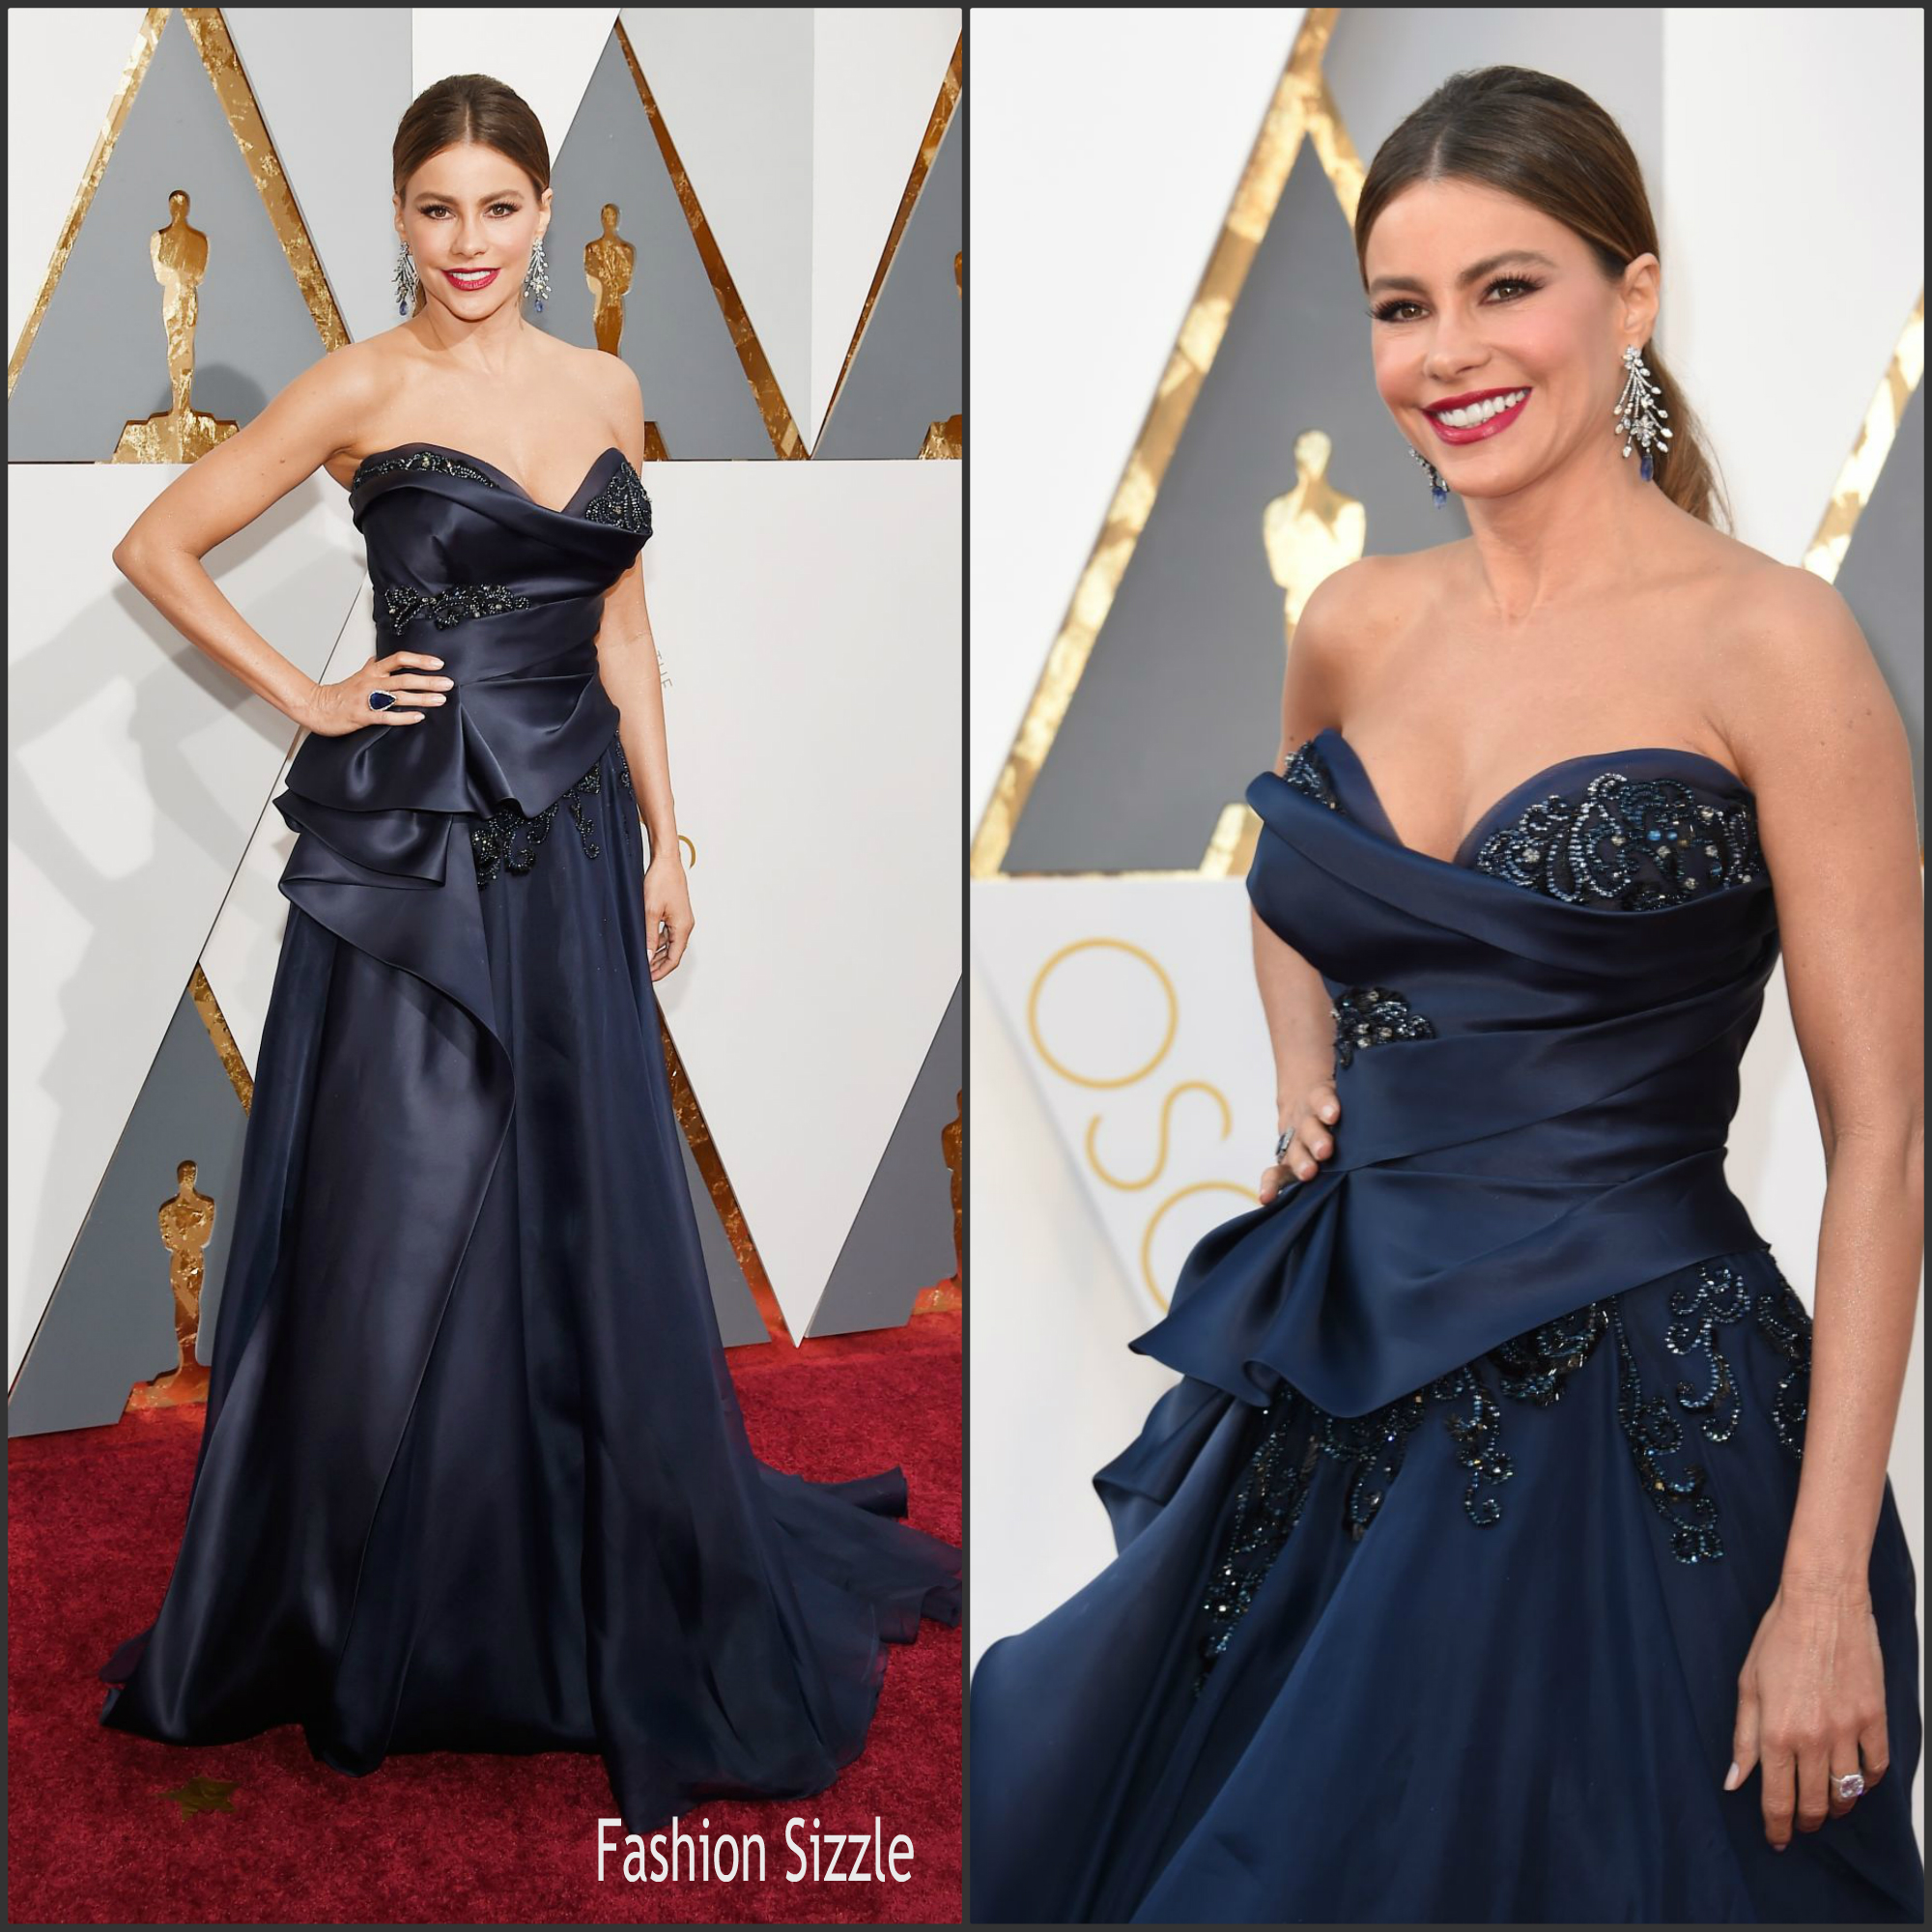 sofia-vergara-in-marchesa-at-oscars-2016